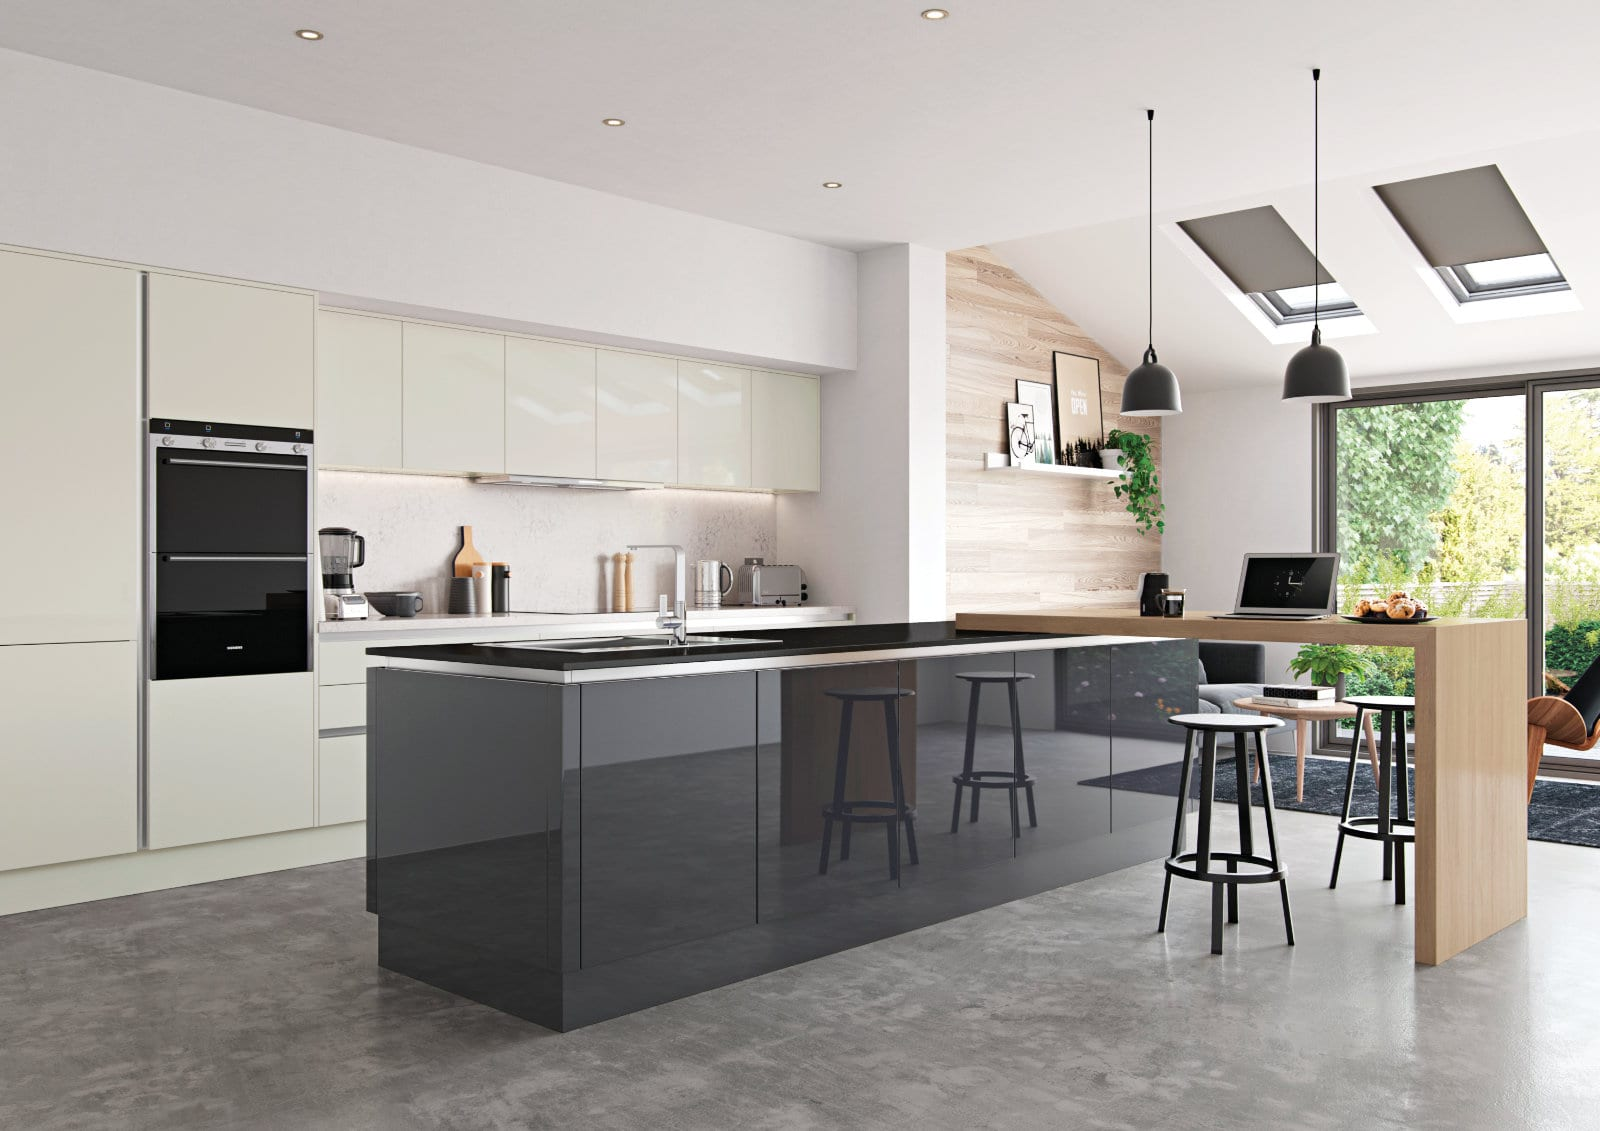 Alku Gloss Open Plan Kitchen With Island | Right Choice Kitchens, South Wales